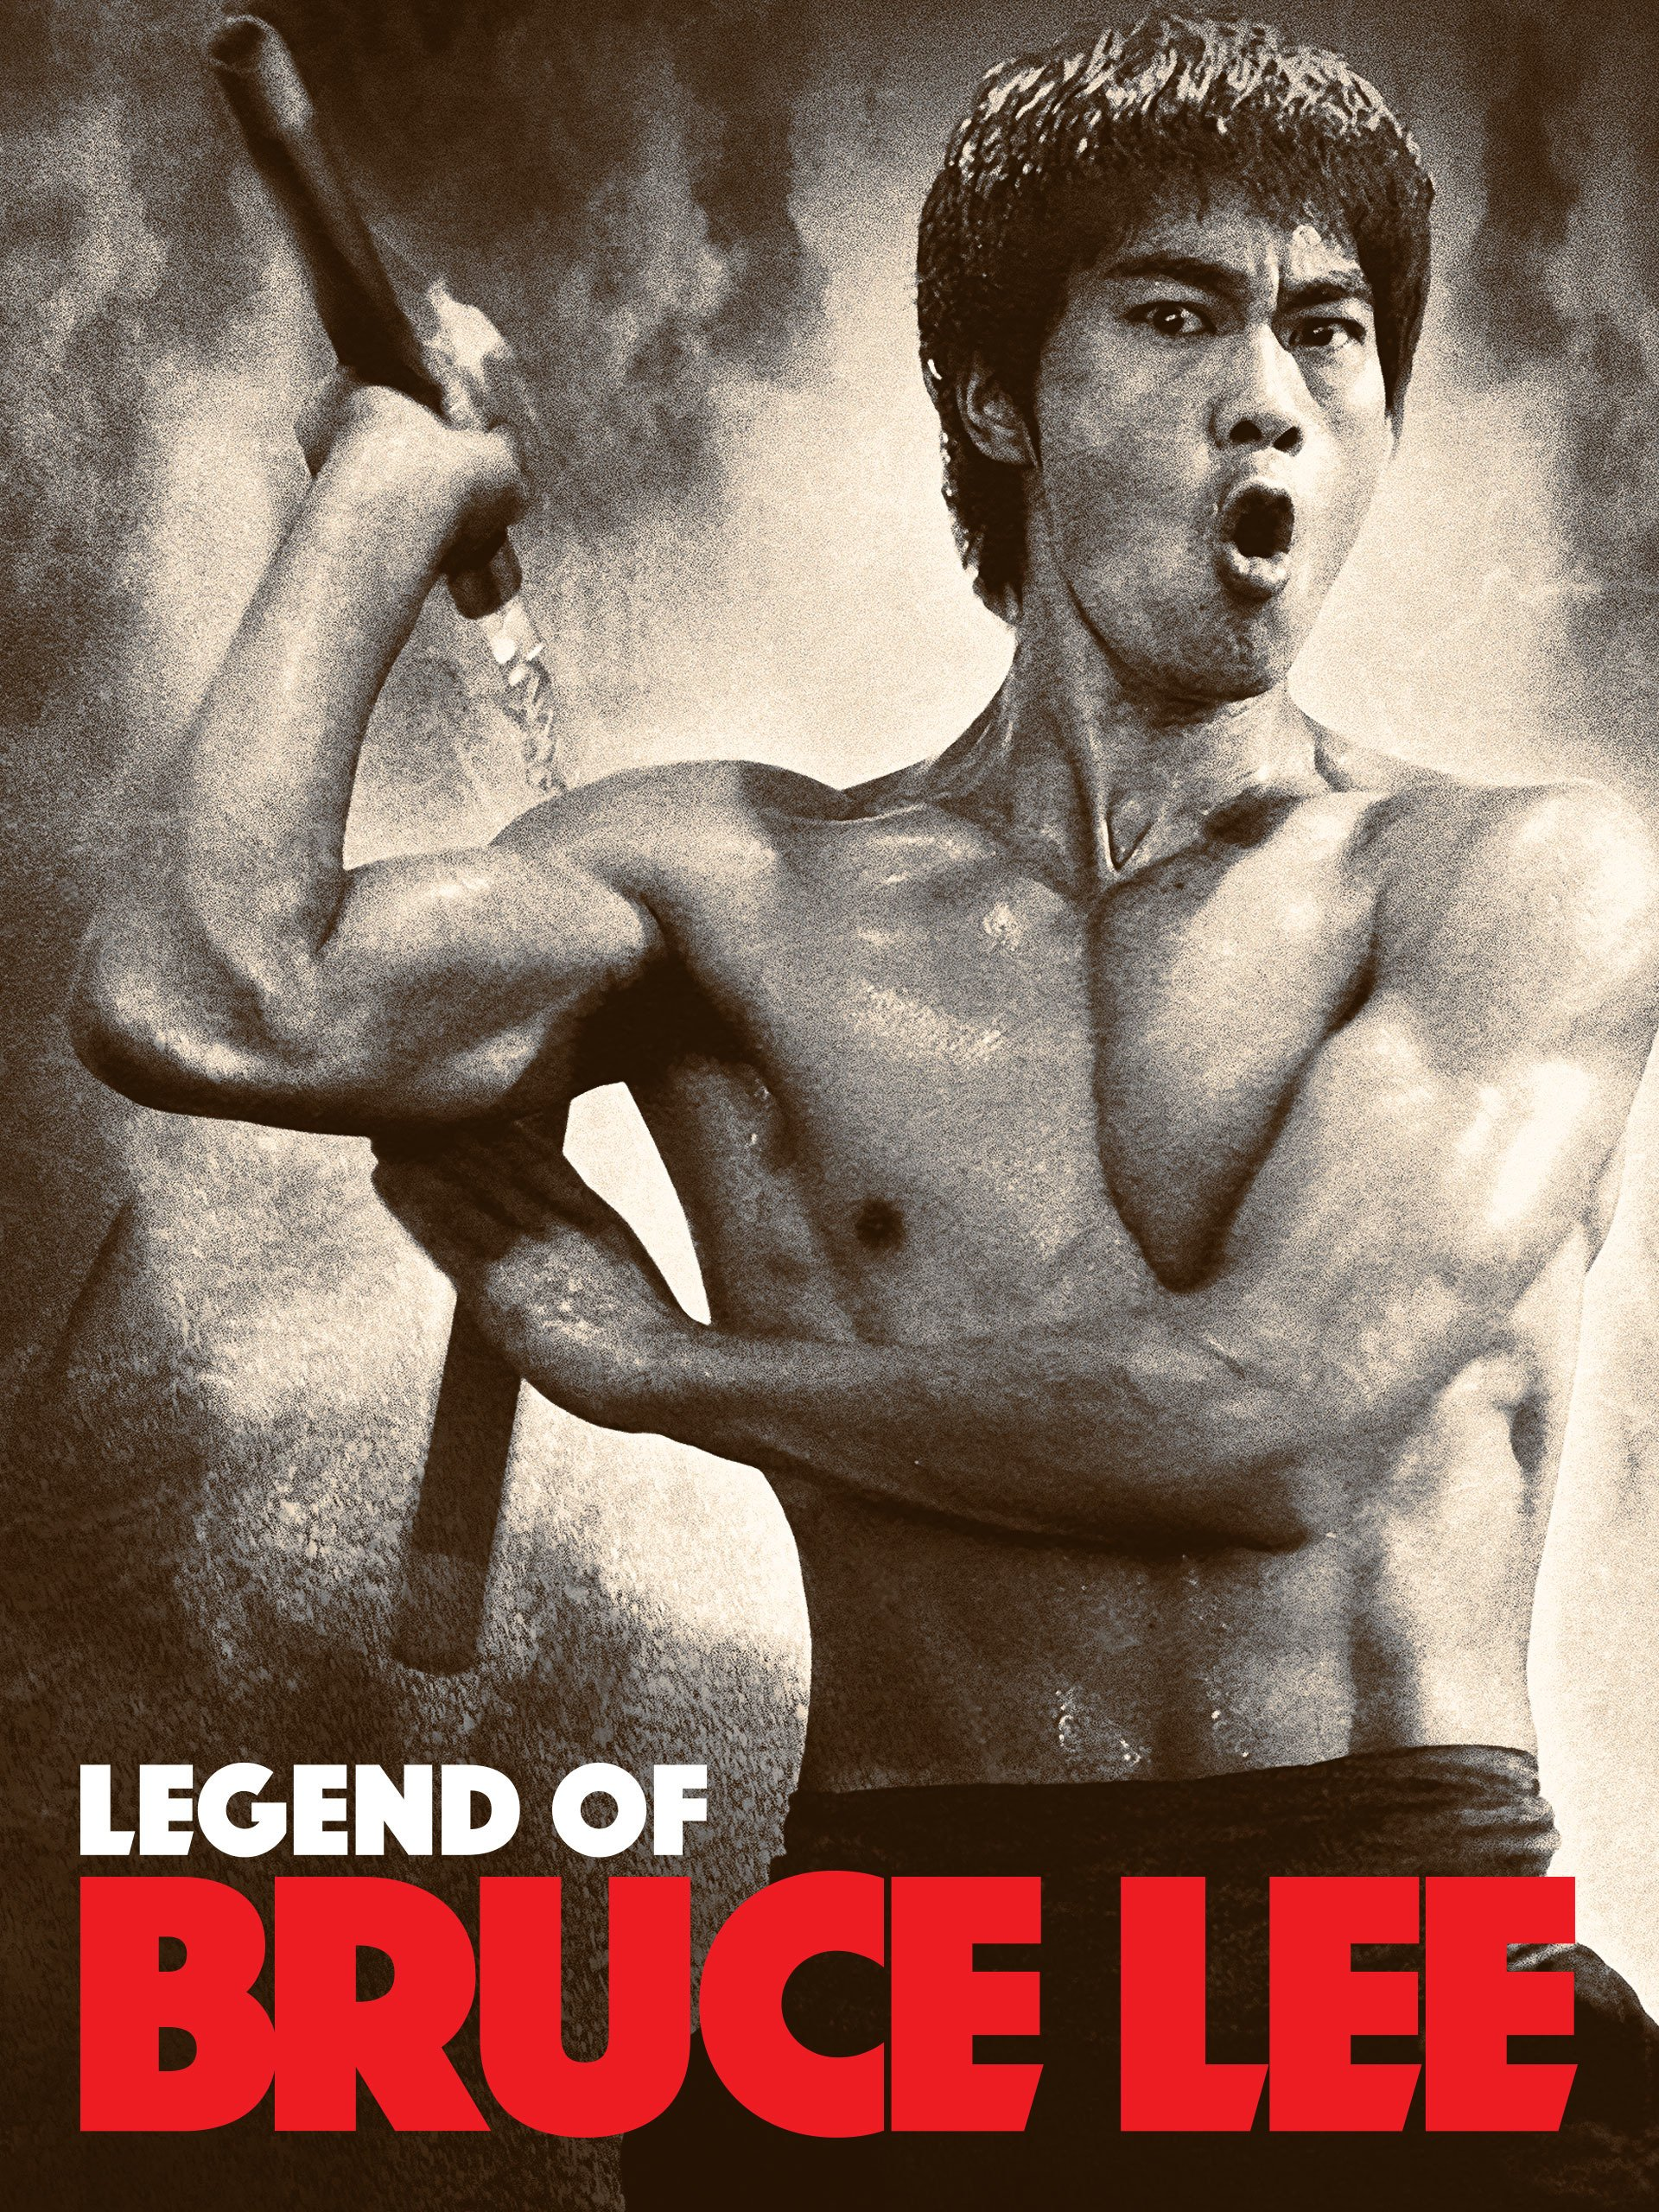 Watch the legend of bruce lee (english subtitled) | prime video.